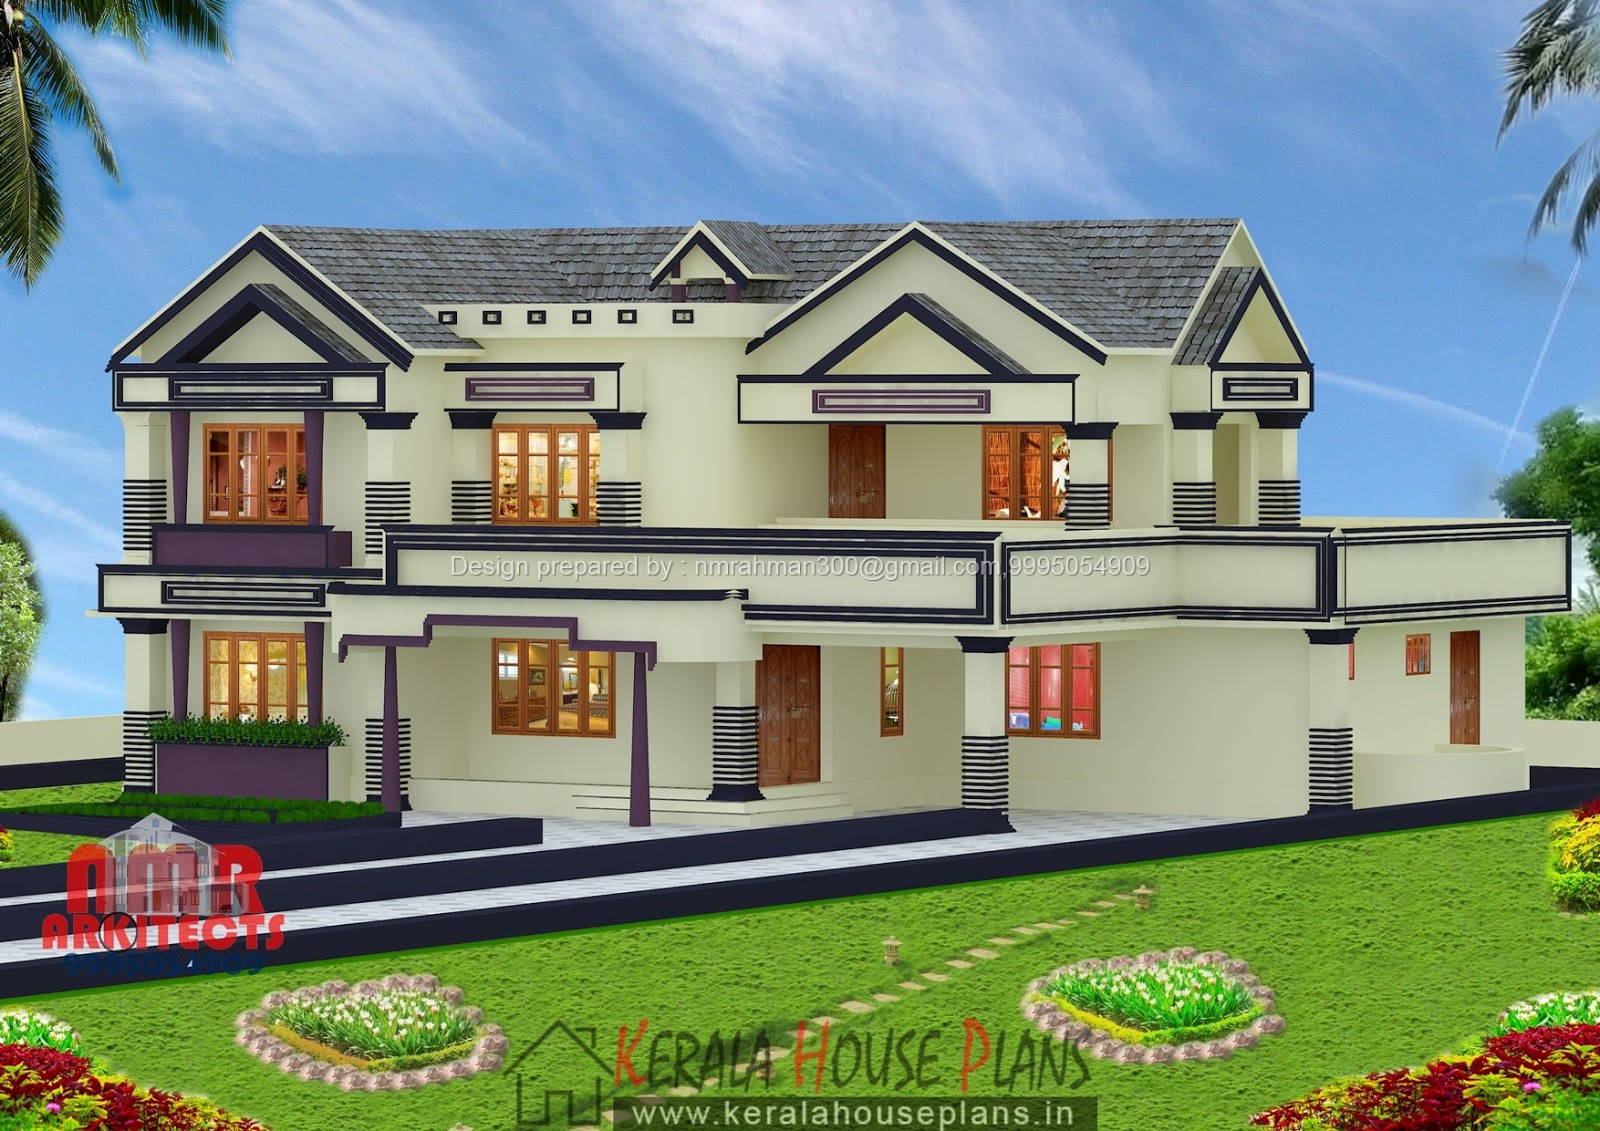 kerala house plans above 3000 sq ft kerala house plans For3000 Sq Ft House Plans Kerala